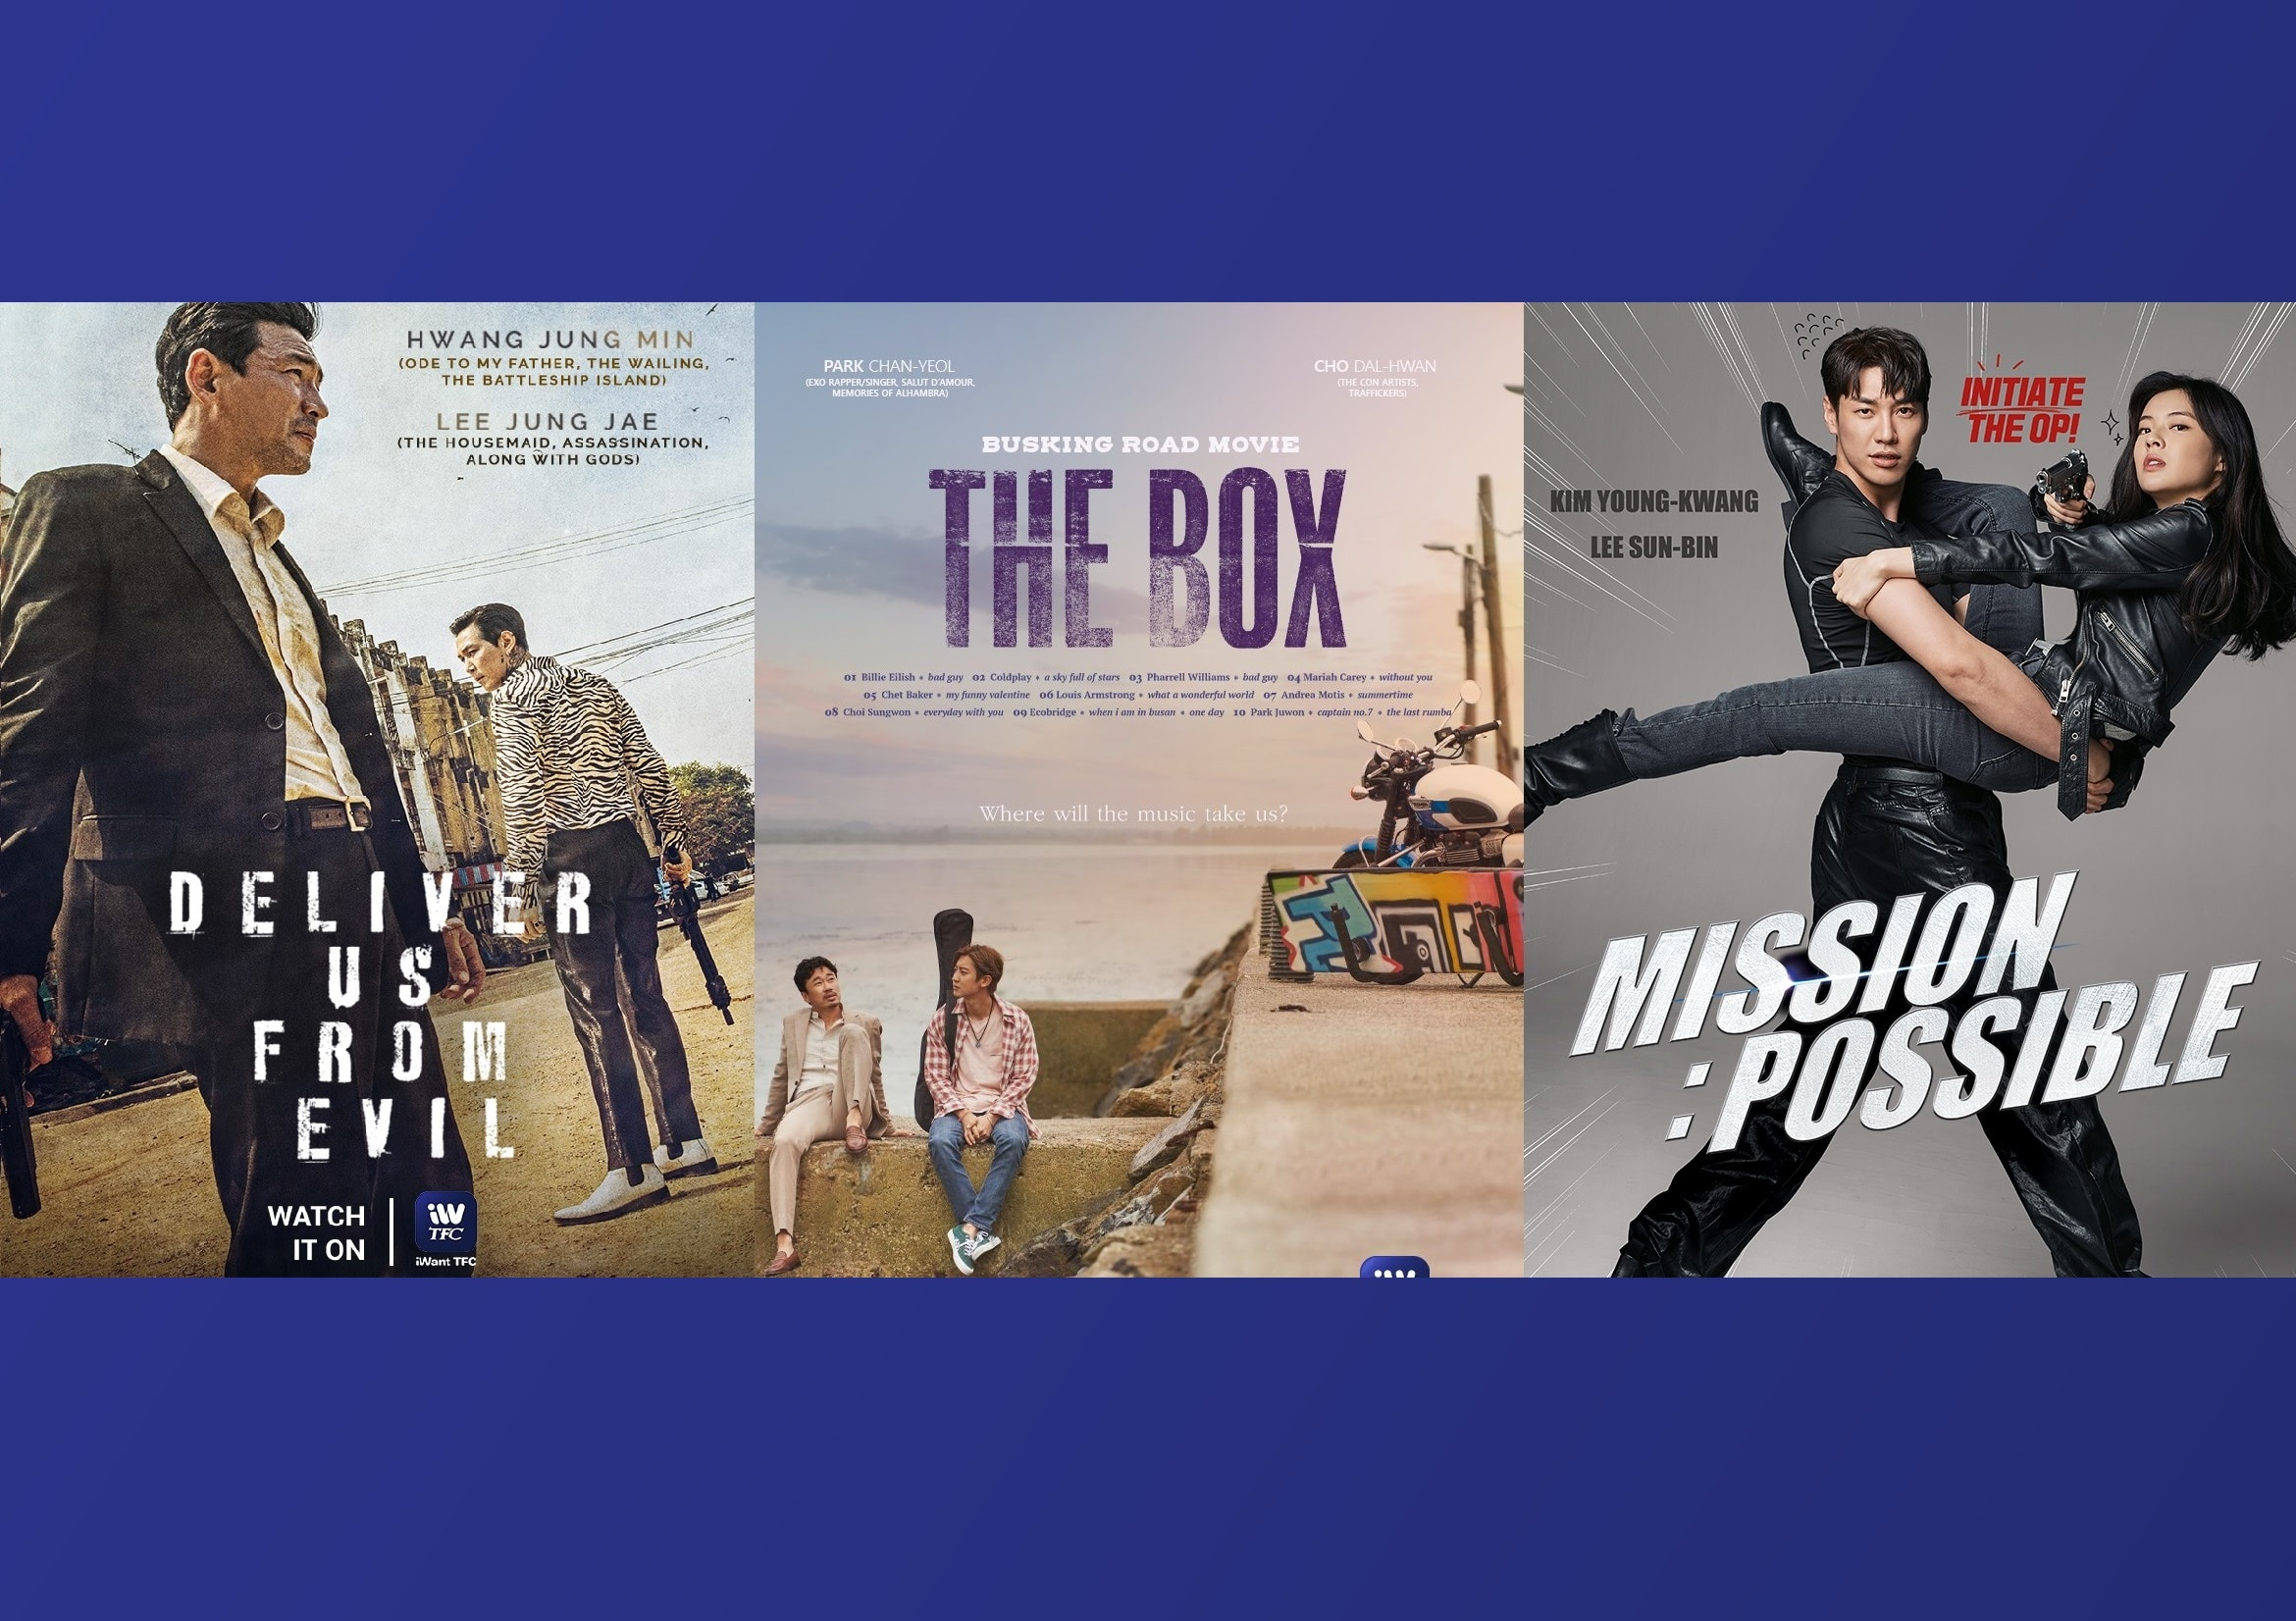 """South Korea's """"Deliver Us From Evil,"""" """"The Box,"""" and """"Mission: Possible"""" premiere in PH on iWantTFC"""